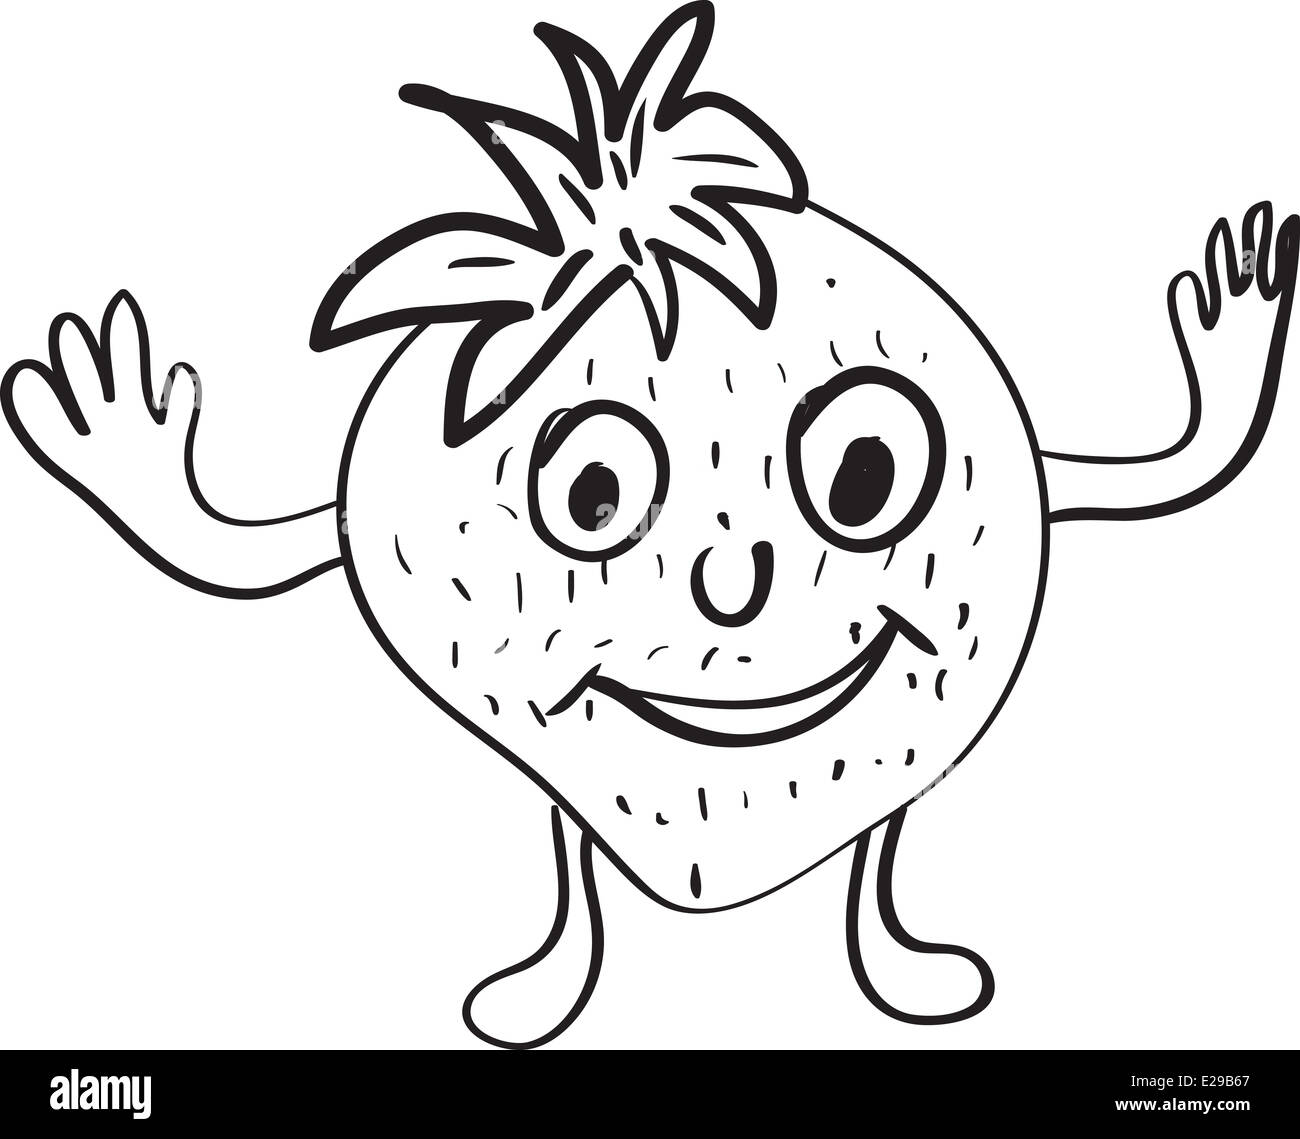 Simple Vector Drawing In The Style Of Strawberry Cartoon Sketches Stock Photo Alamy